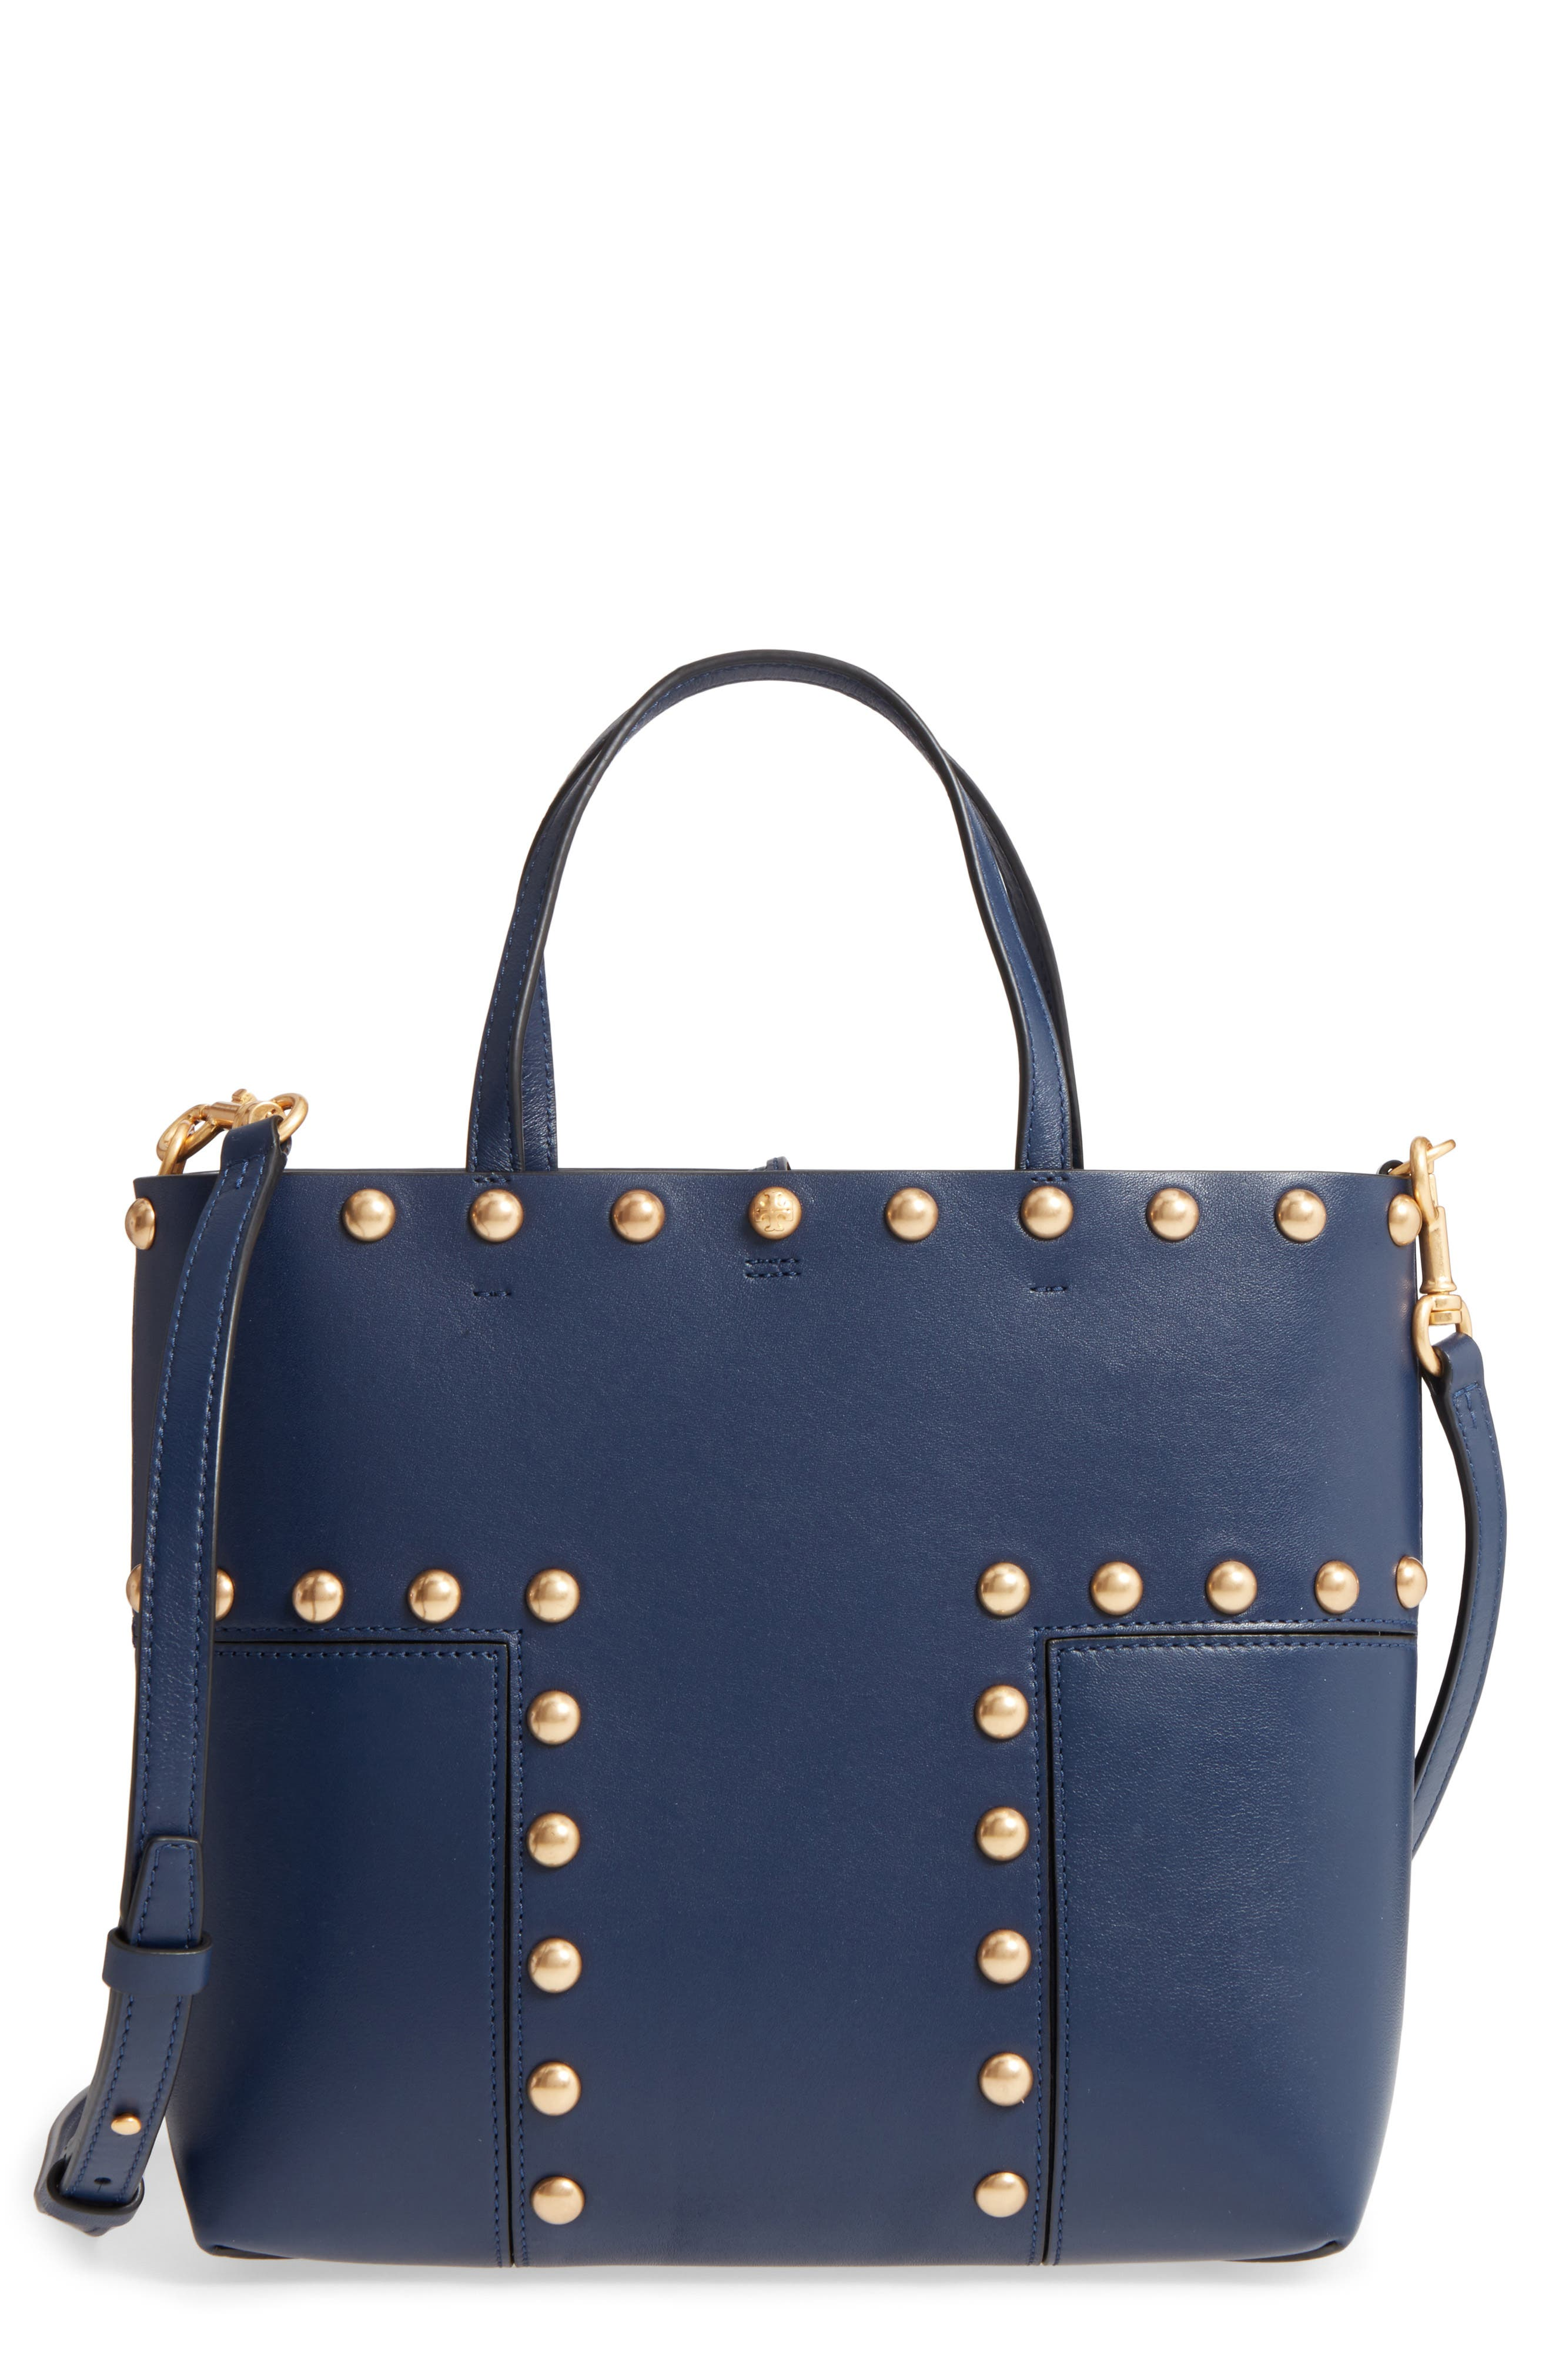 Tory Burch Block-T Mini Studded Leather Tote